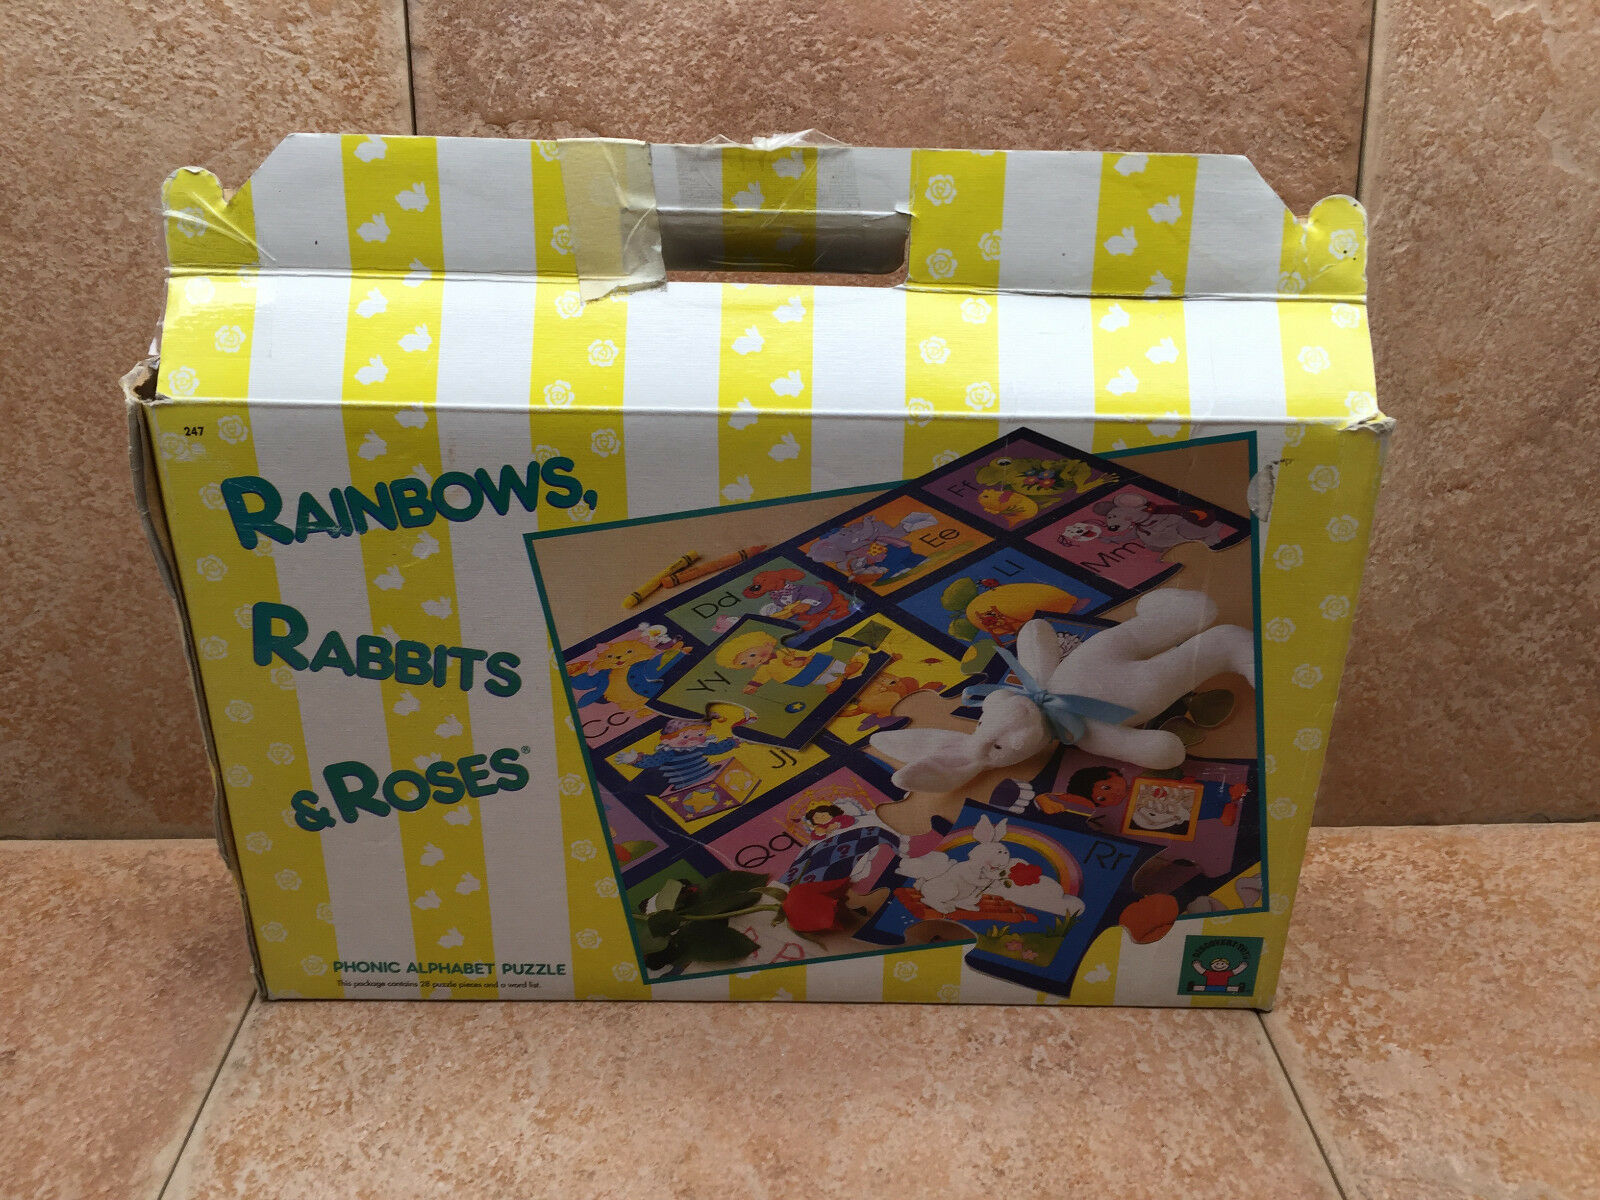 Rainbows Rabbits & pinks by Discovery Toys Phonic Alphabet Puzzle  - complete